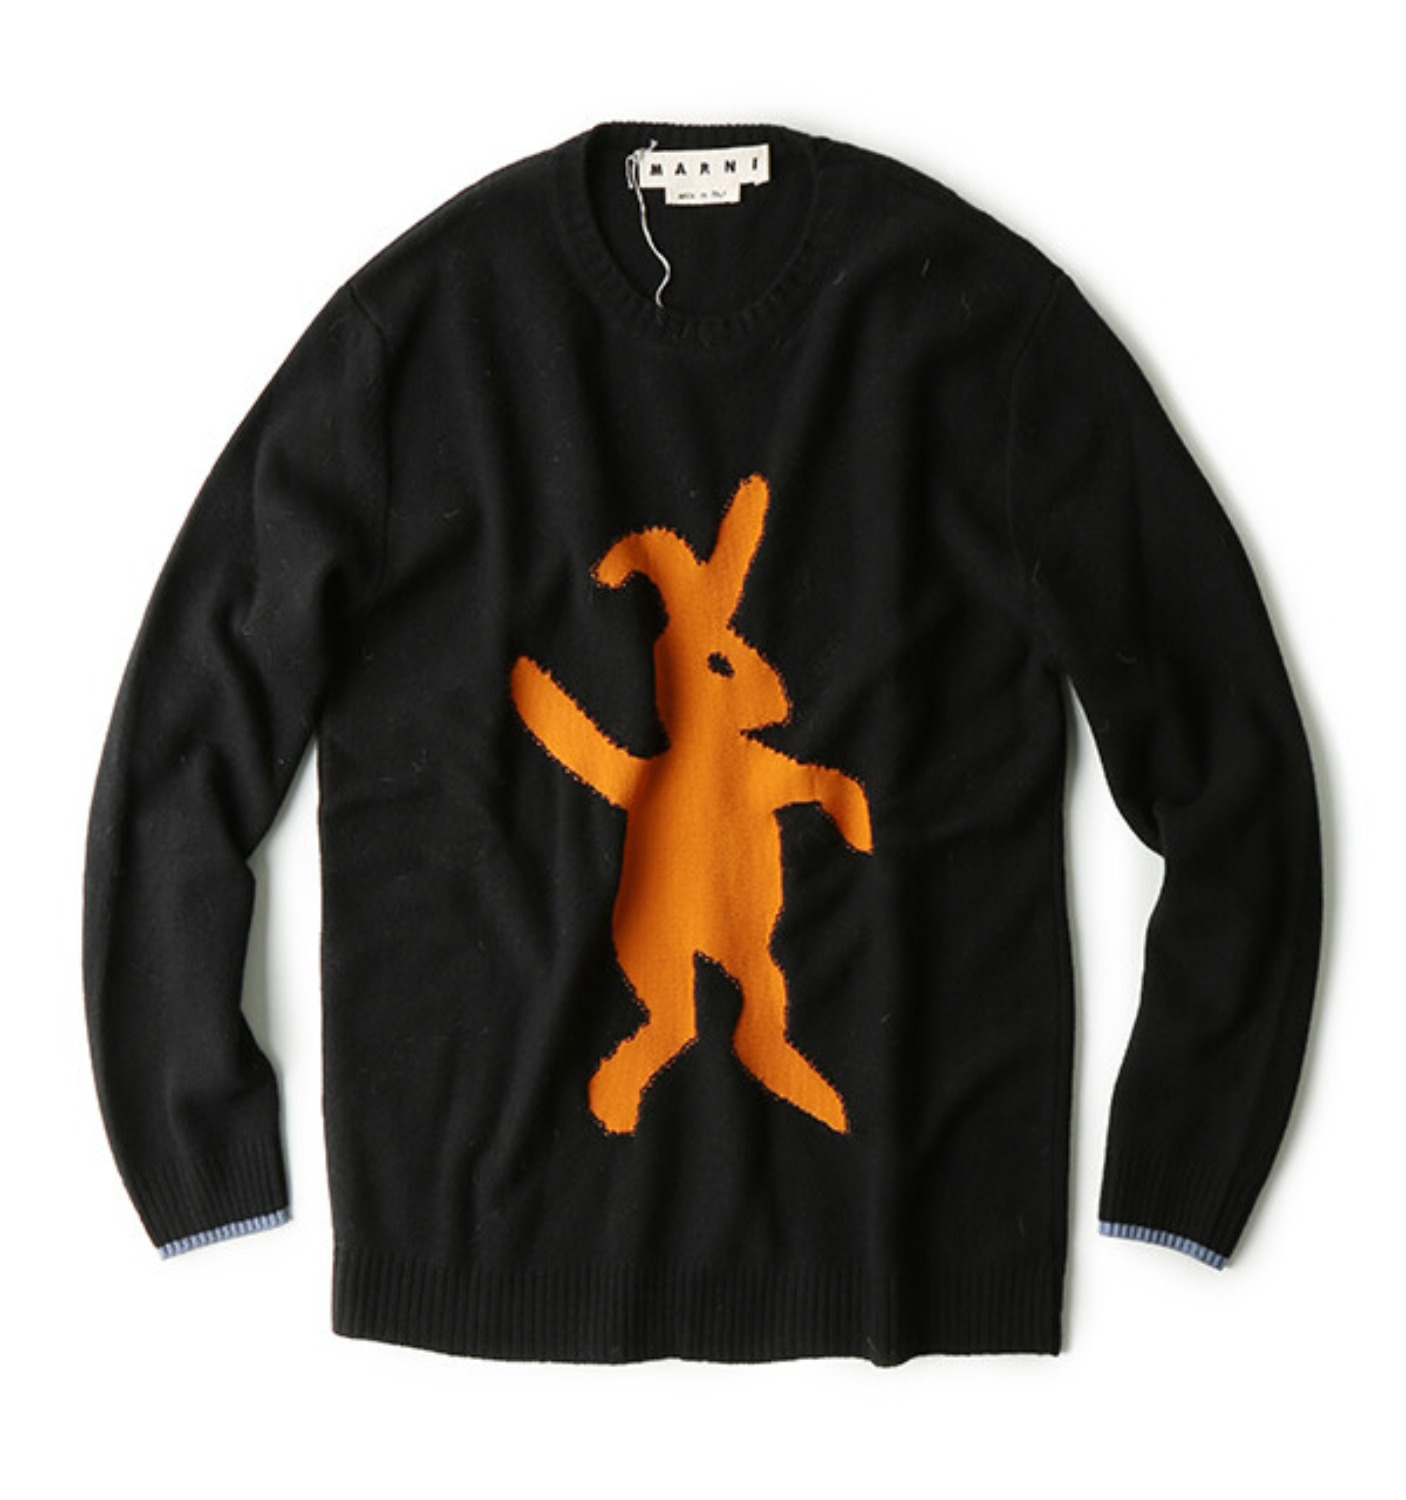 CREW NECK SWEATER BLACK